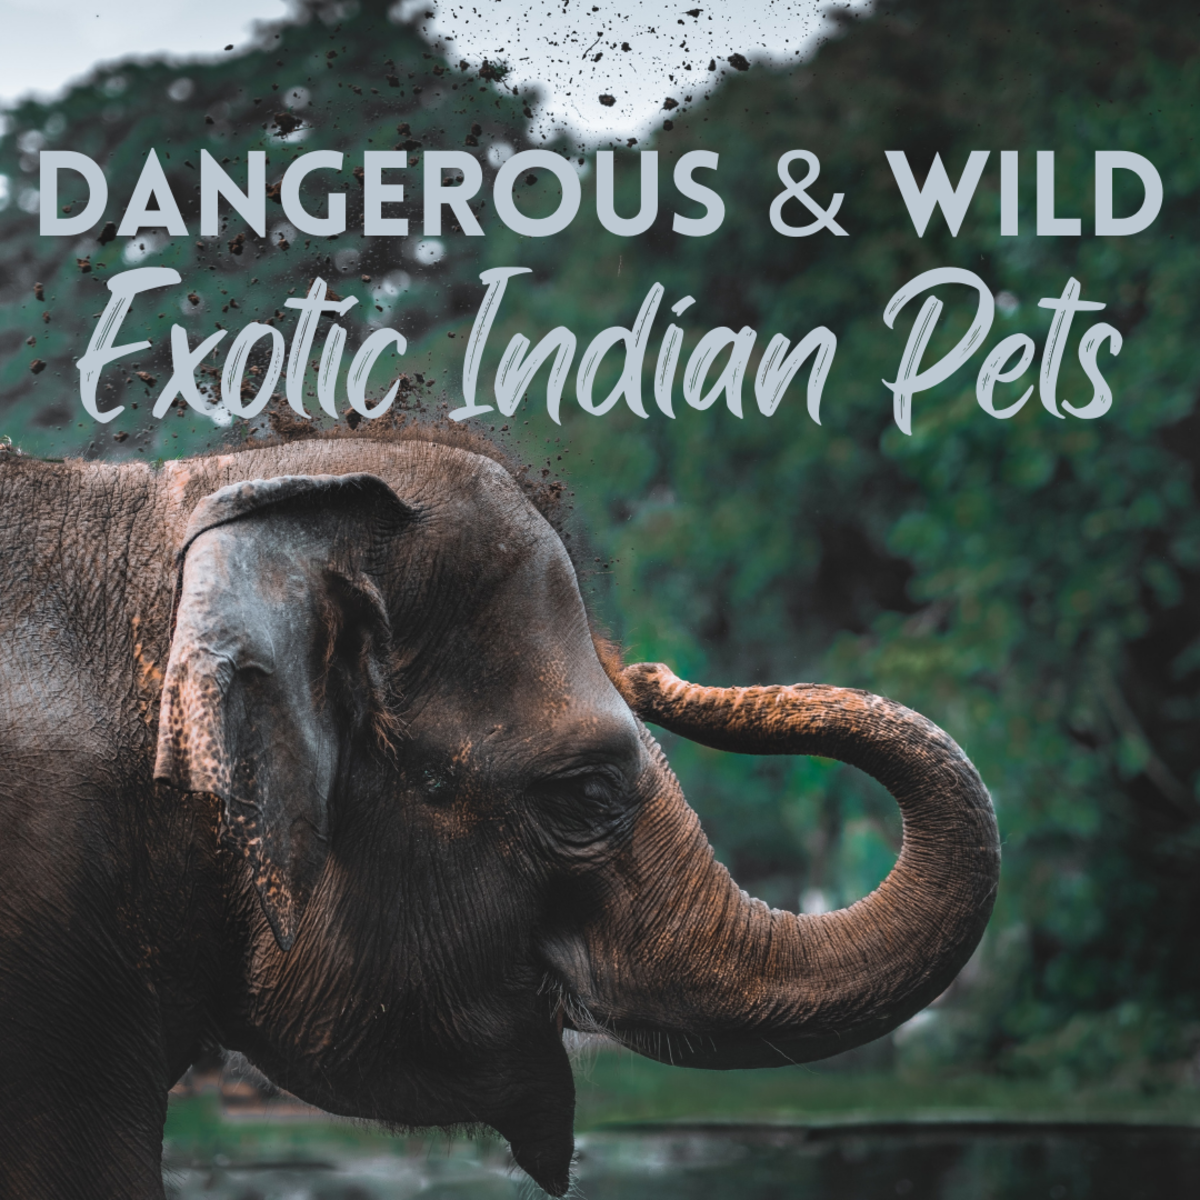 What are the most fascinating wild animals kept as pets in India?